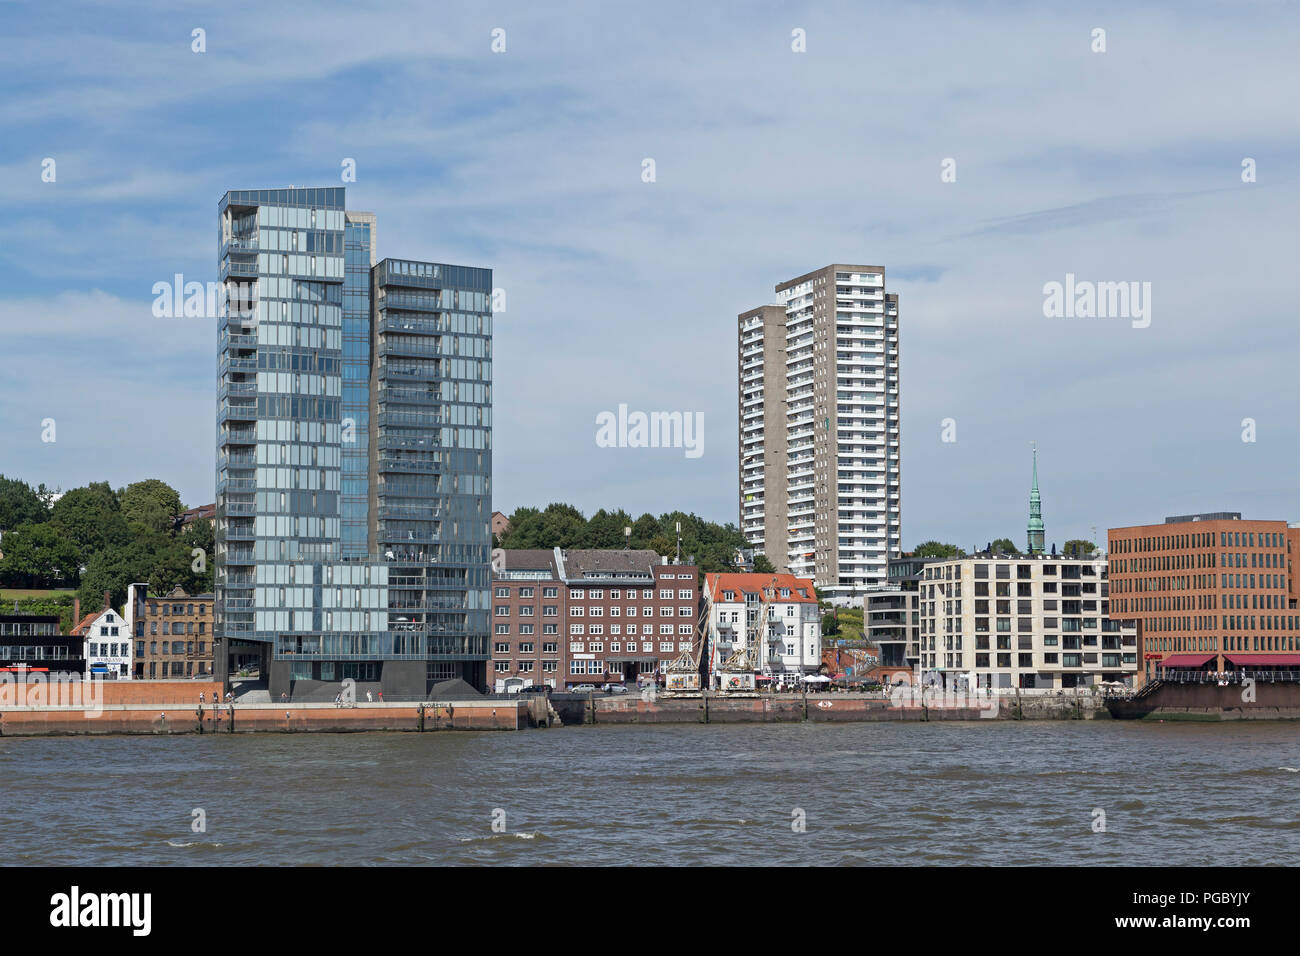 office buildings at the waterfront, River Elbe, Hamburg, Germany - Stock Image